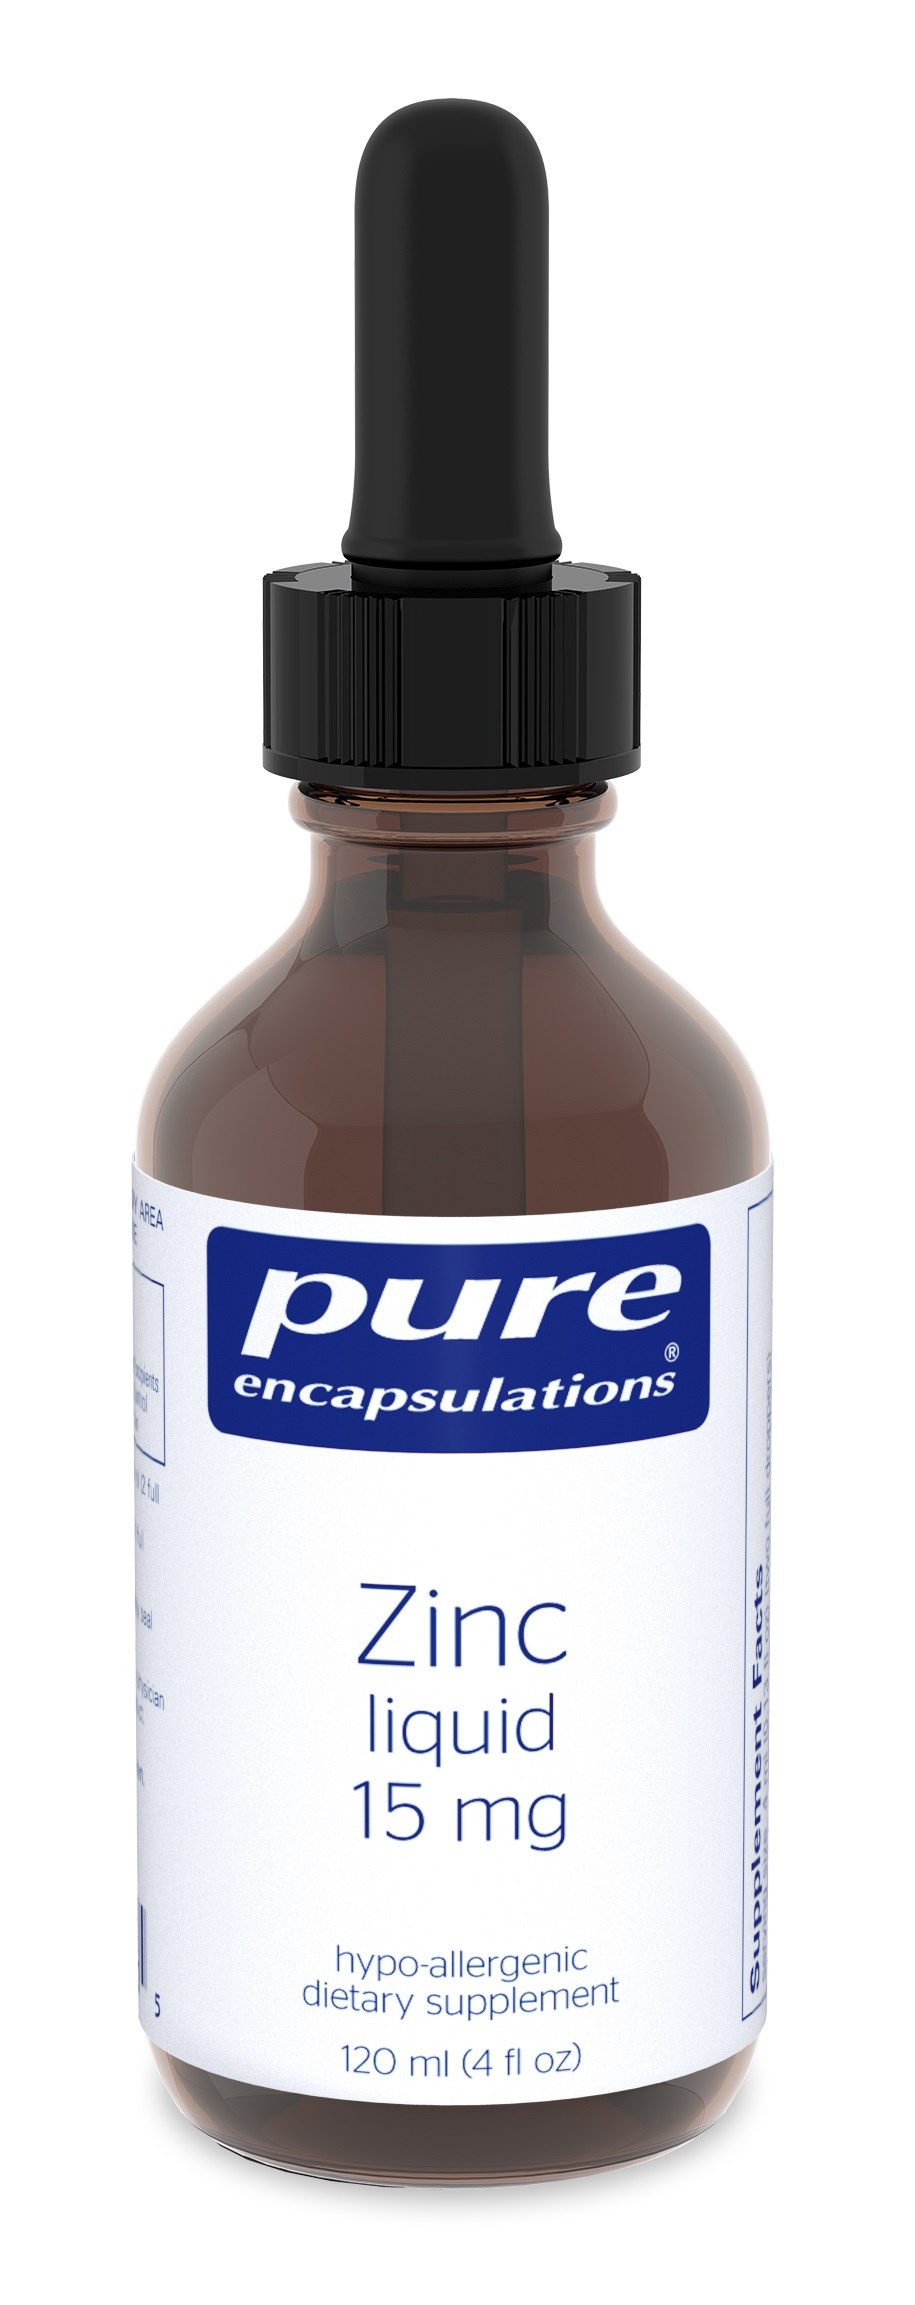 Pure Encapsulations Zinc liquid 15 mg